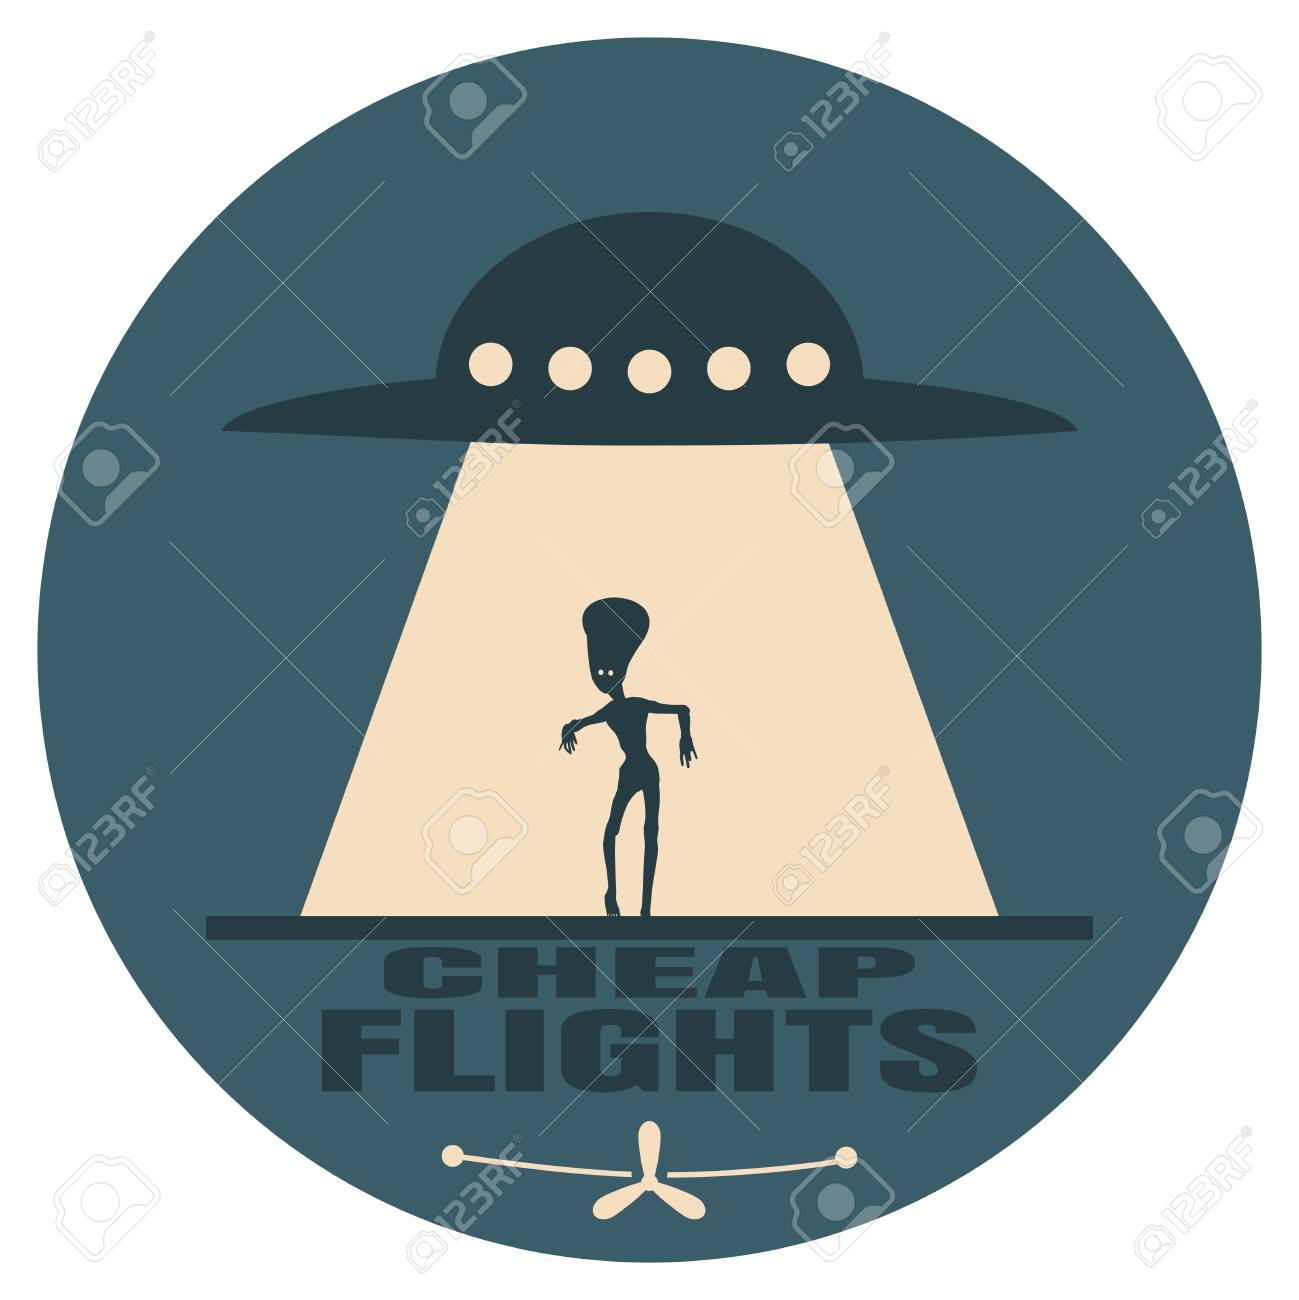 UFO and silhouette of extraterrestrial alien. Space ship UFO ray of light in the night sky. Cheap flights text. Image relative to airplane traveling - 126336501